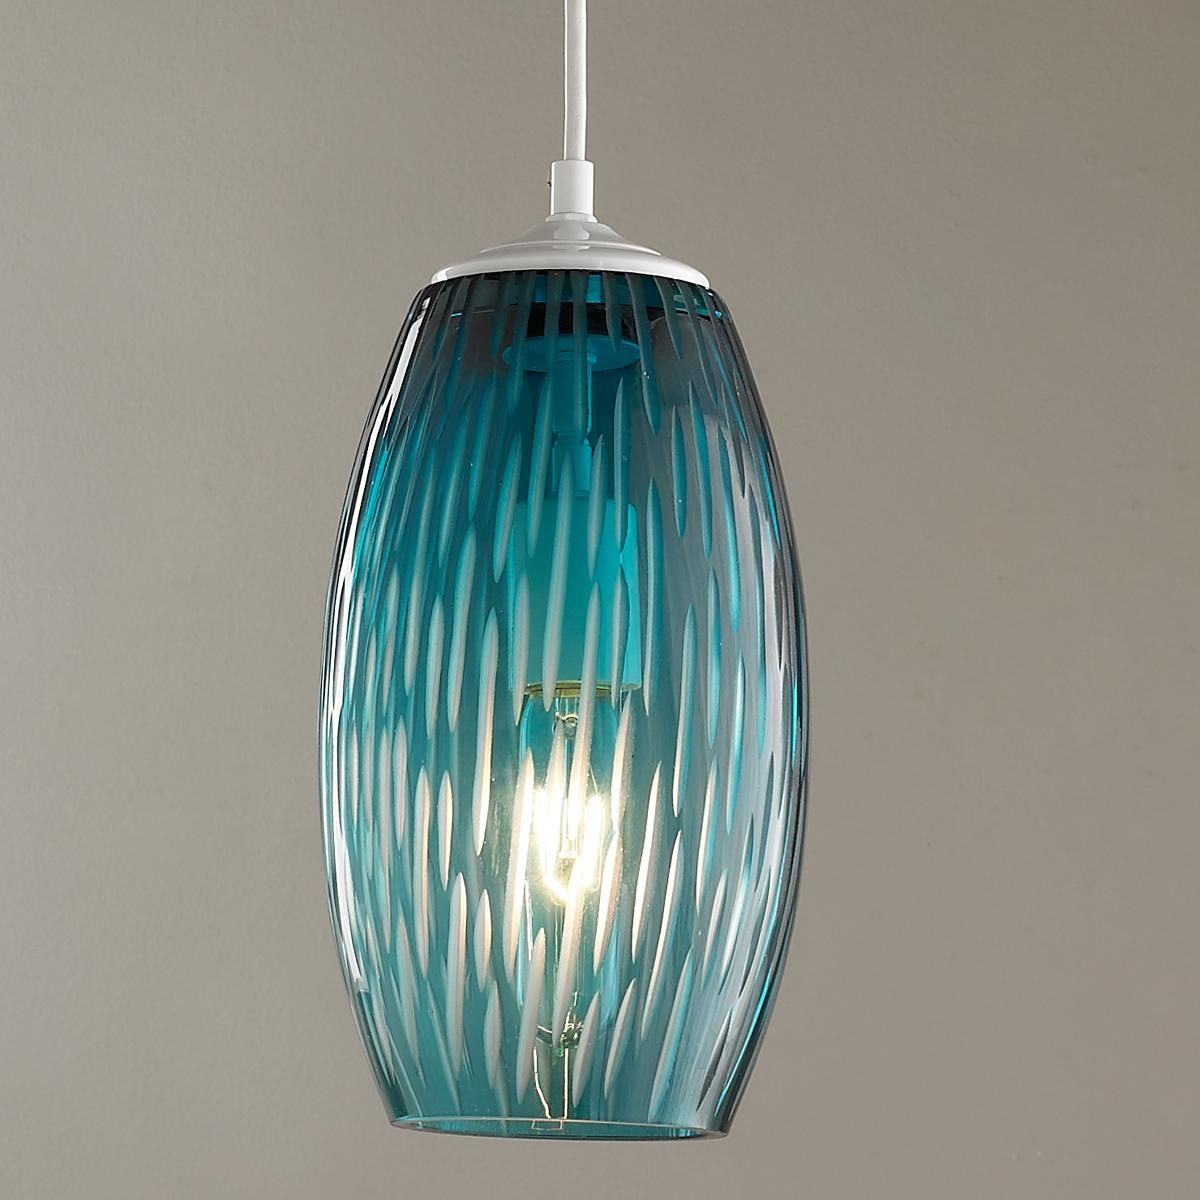 Etched Lines Glass Pendant Light | Glass pendants, Pendant lighting ...